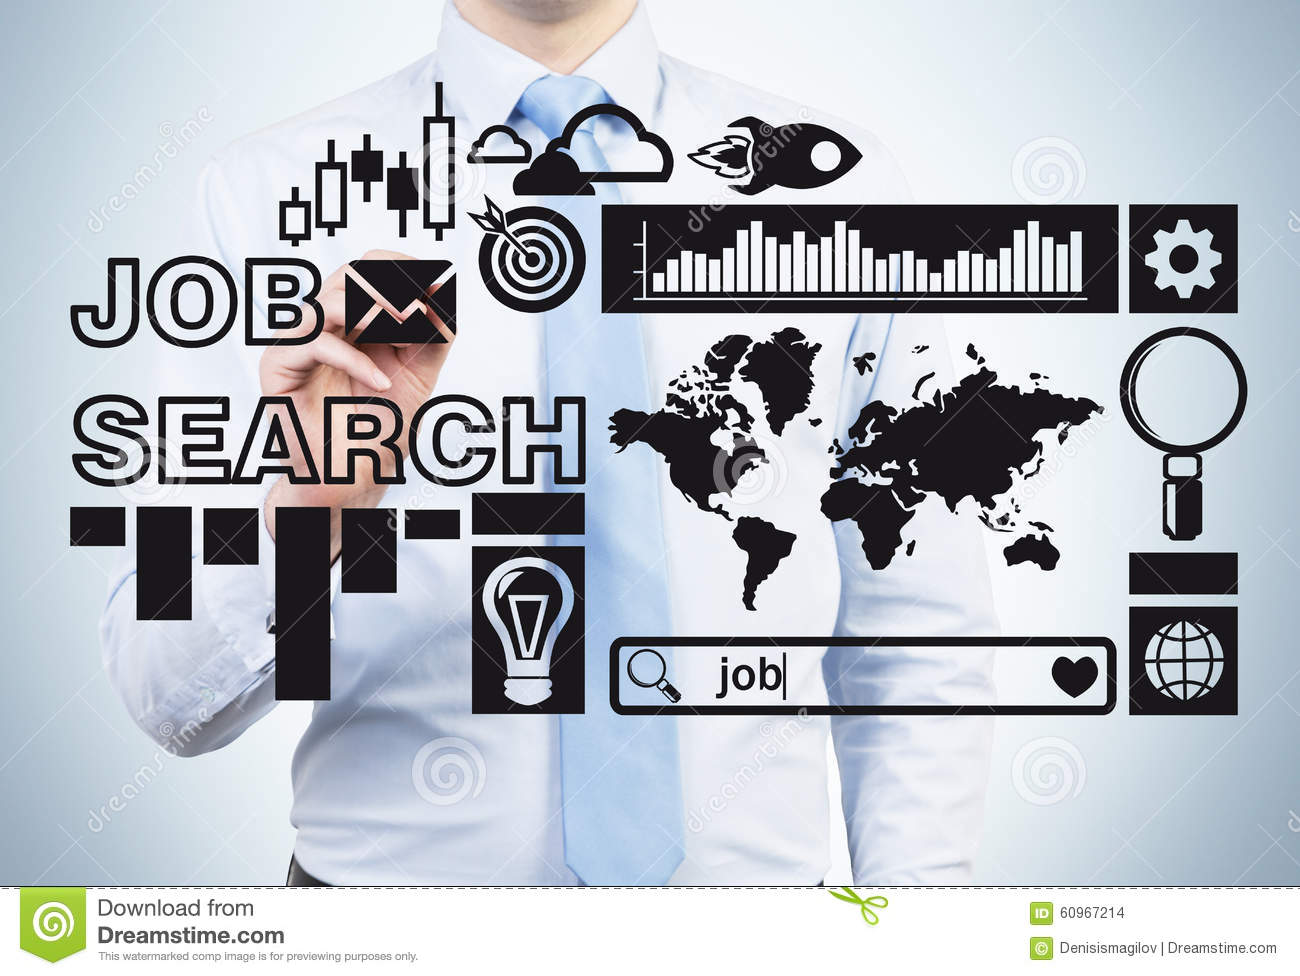 professional job icons stock photos image  young professional is looking for a job a person is drawing some recruitment icons on